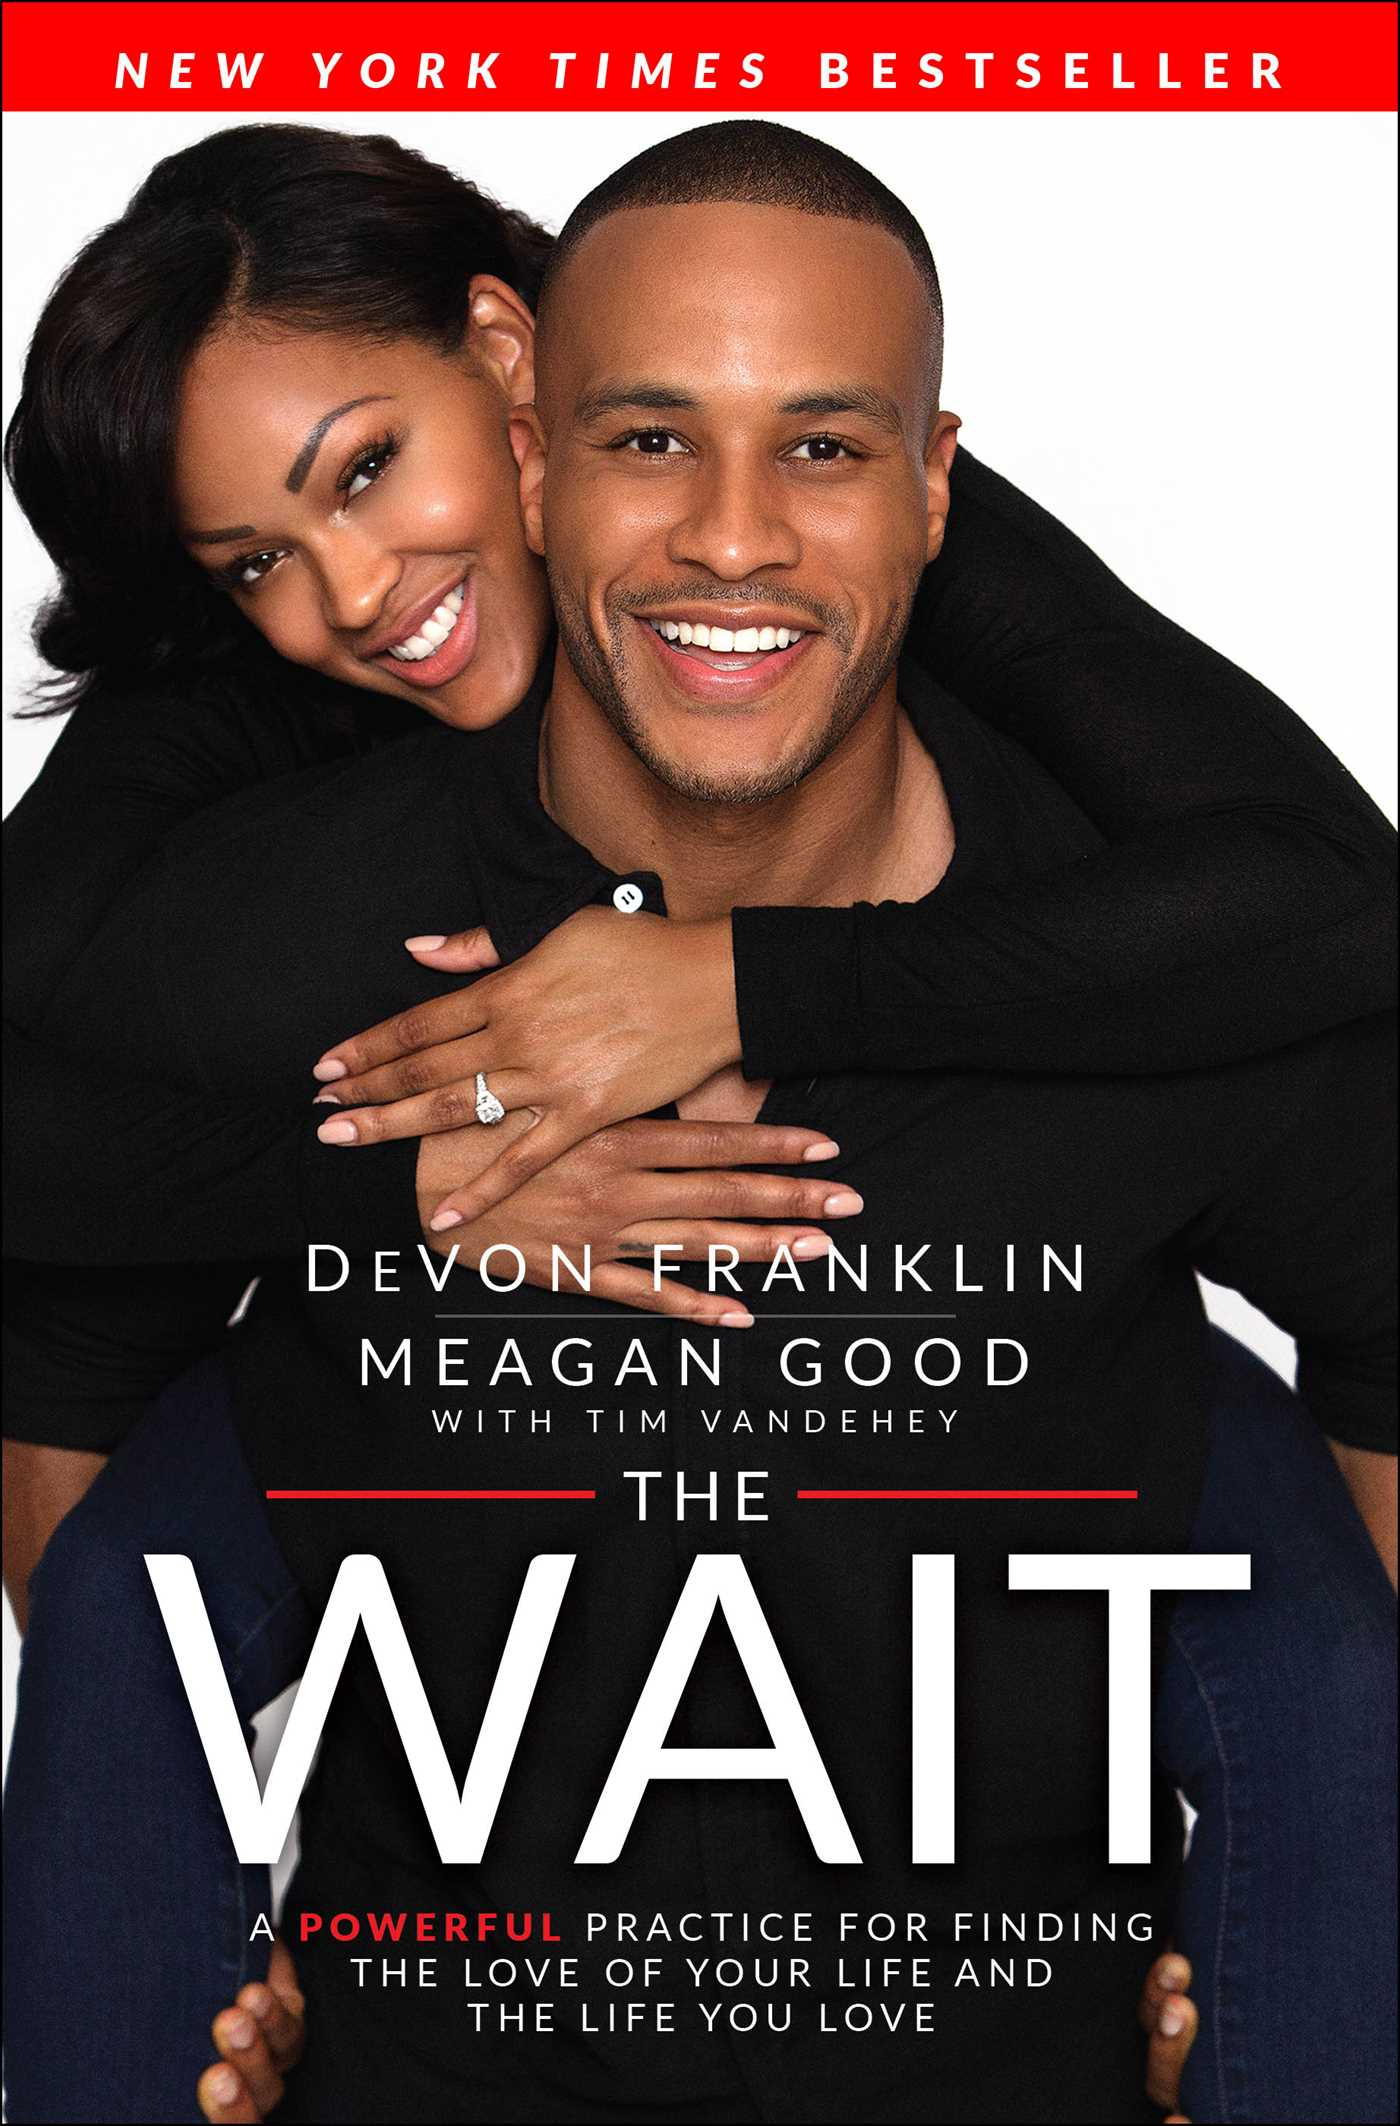 The wait 9781501105296 hr